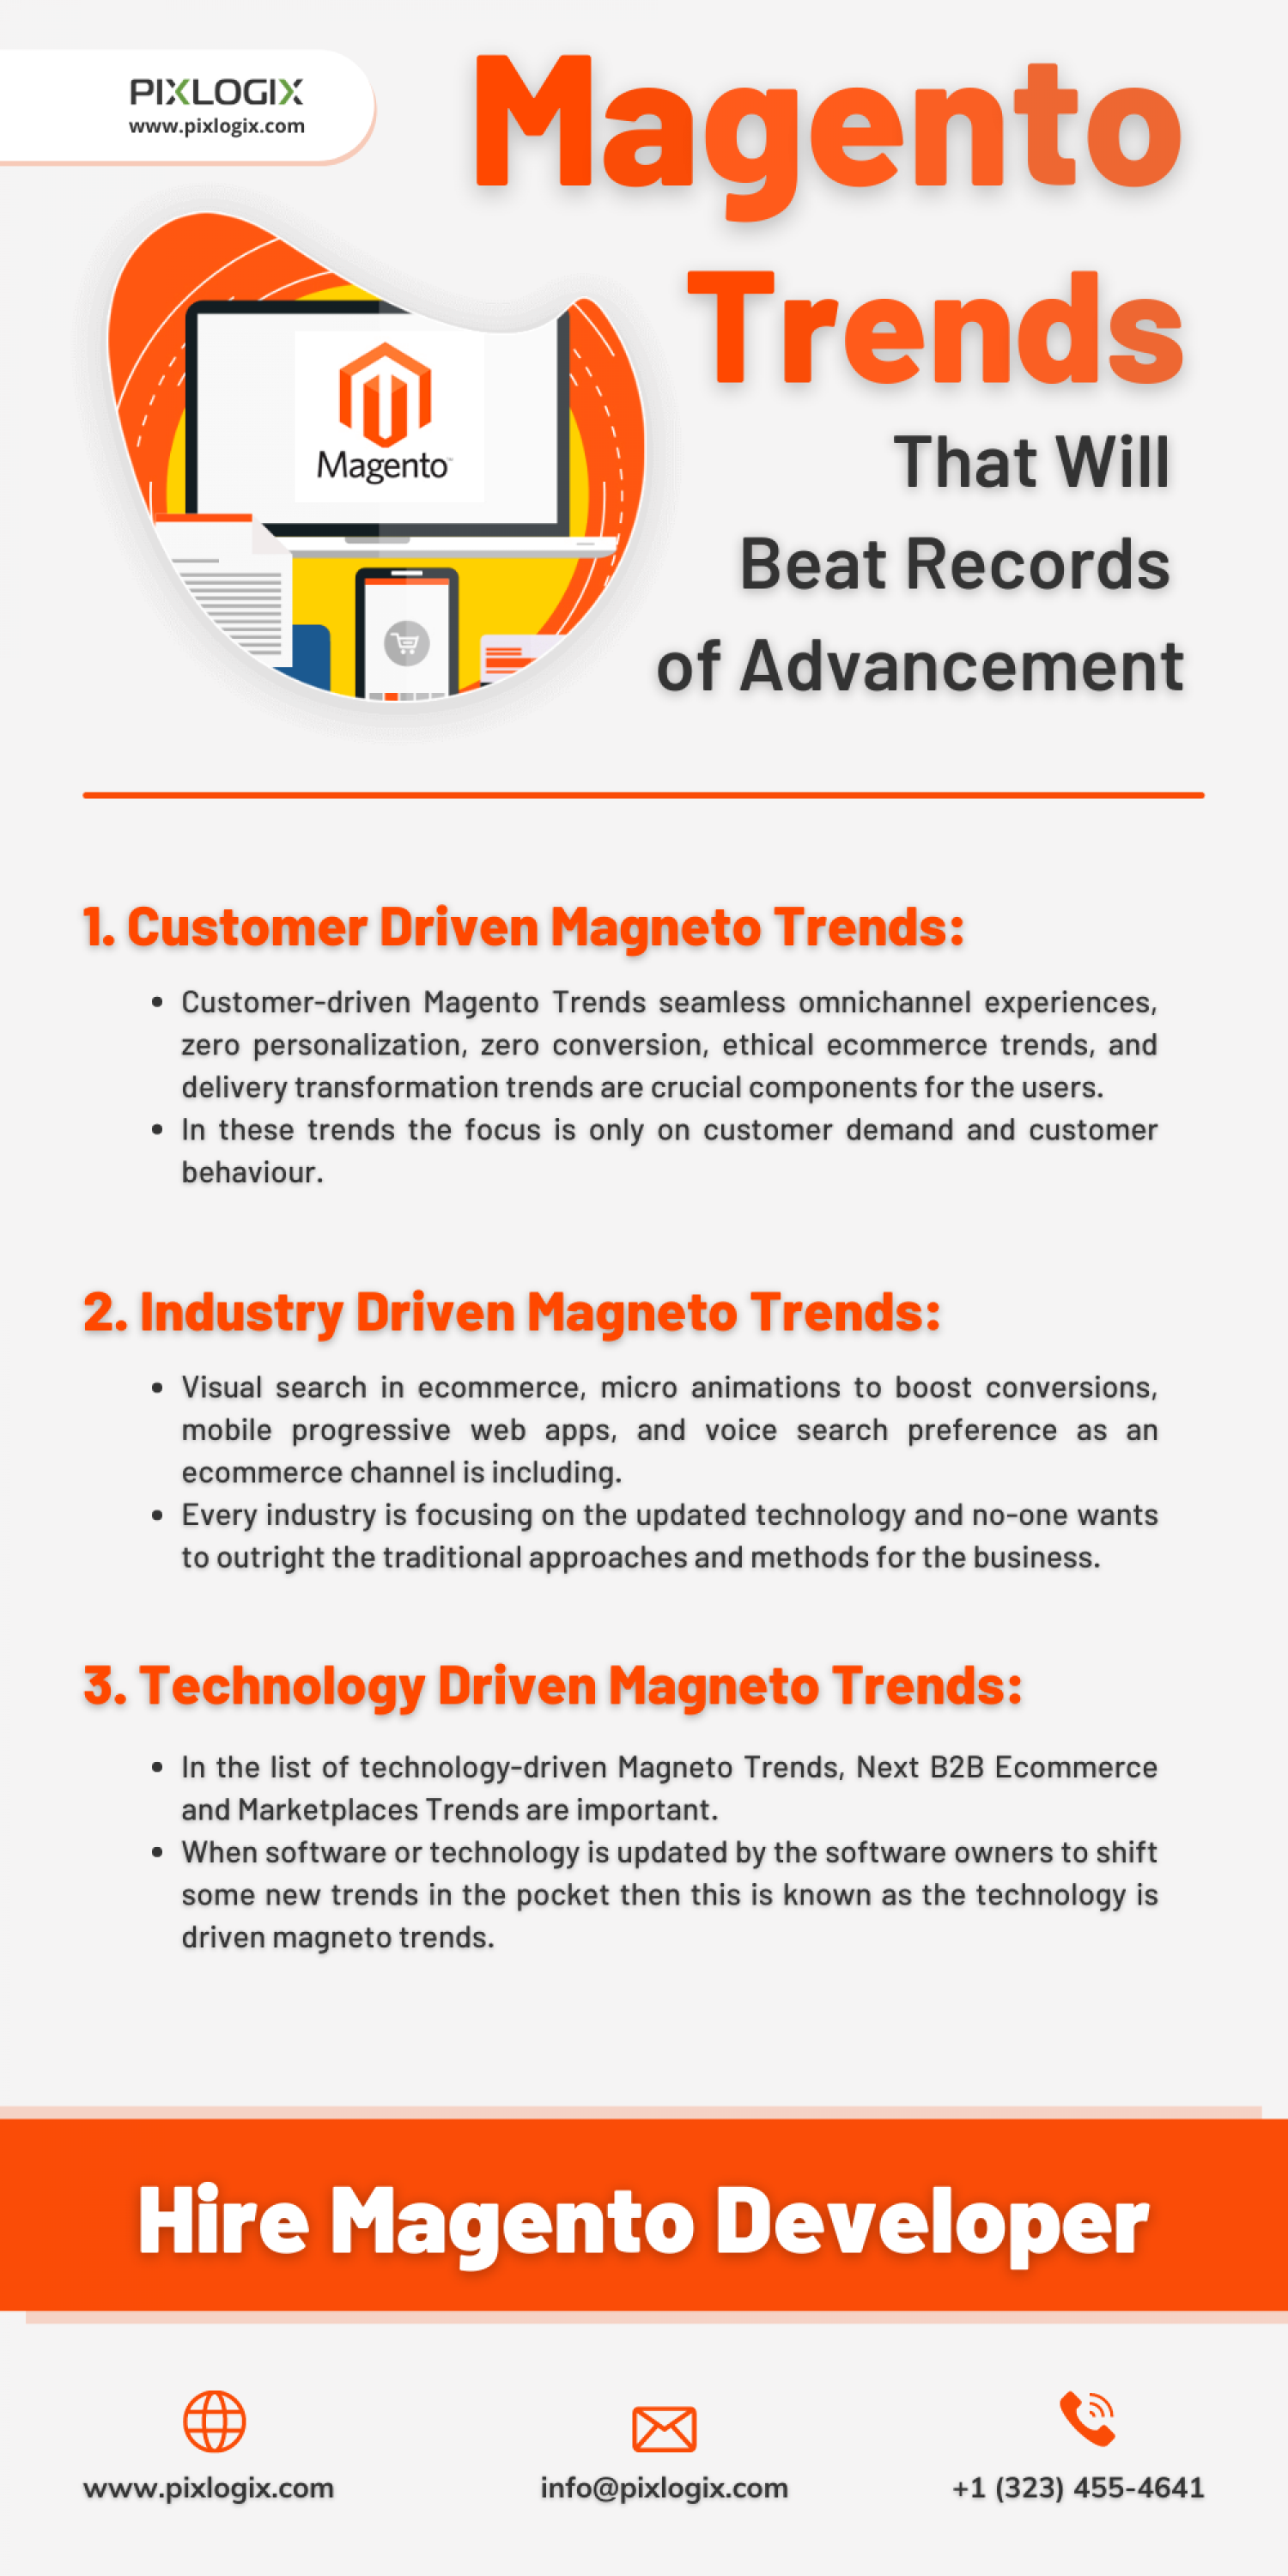 Magento Trends That Will Beat Records of Advancement Infographic